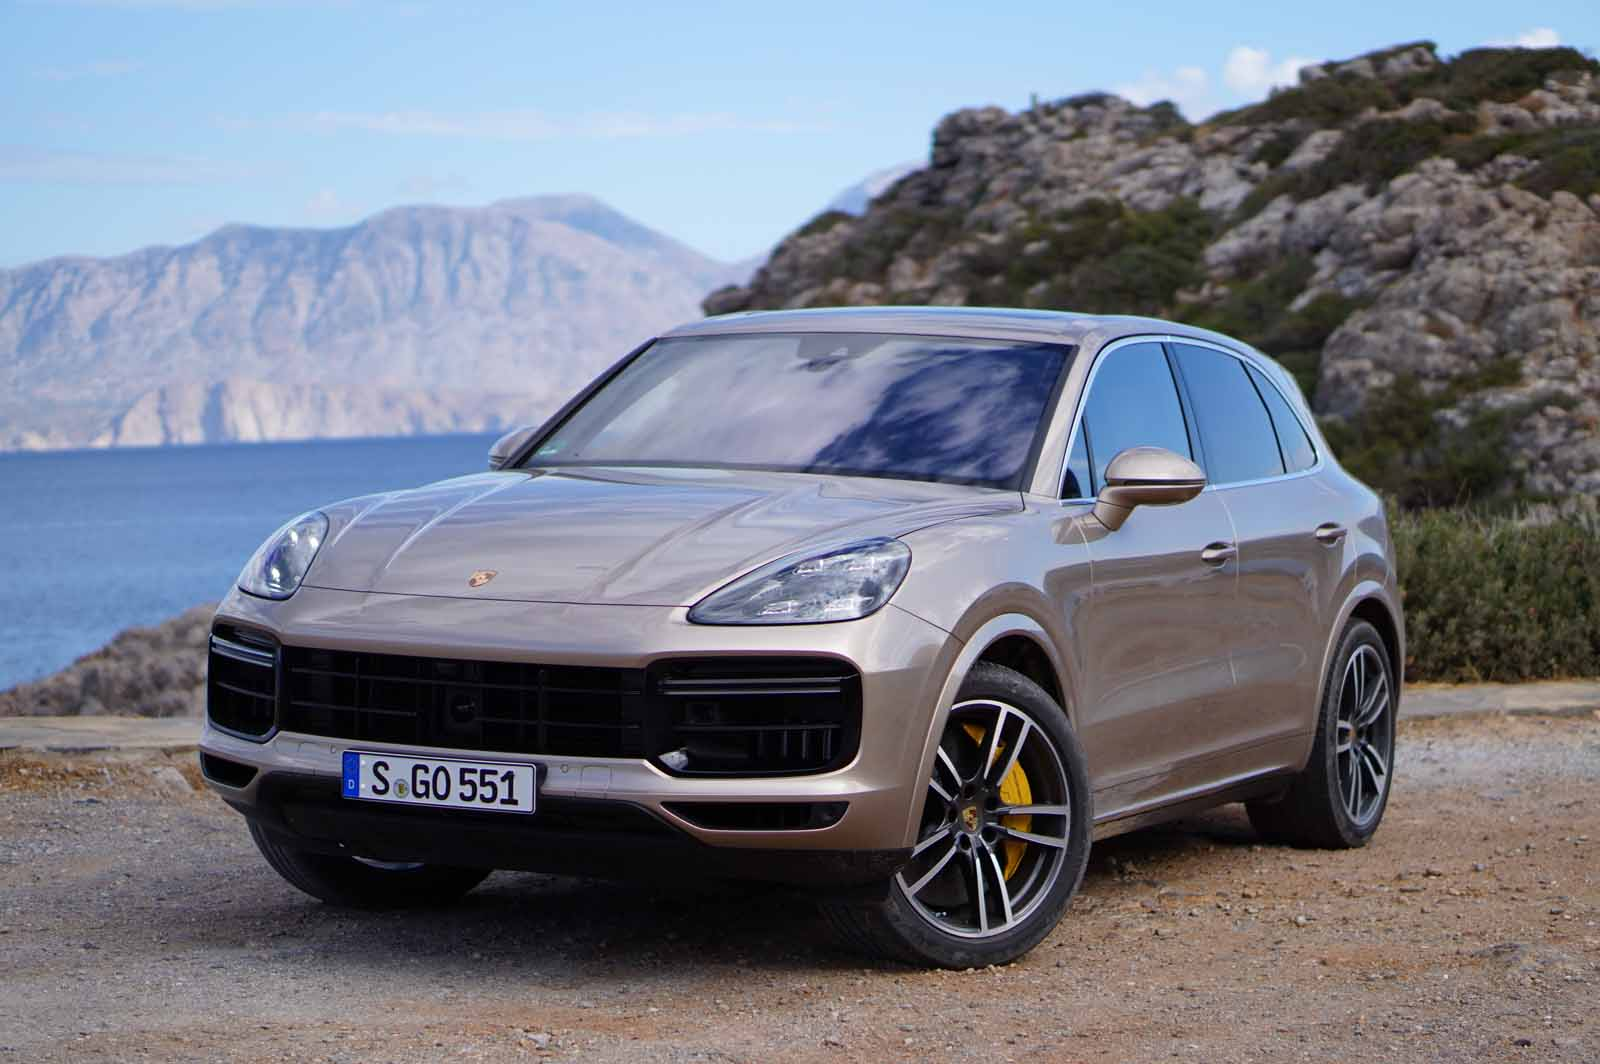 Used Porsche Cayenne >> 2019 Porsche Cayenne Review and First Drive - AutoGuide.com